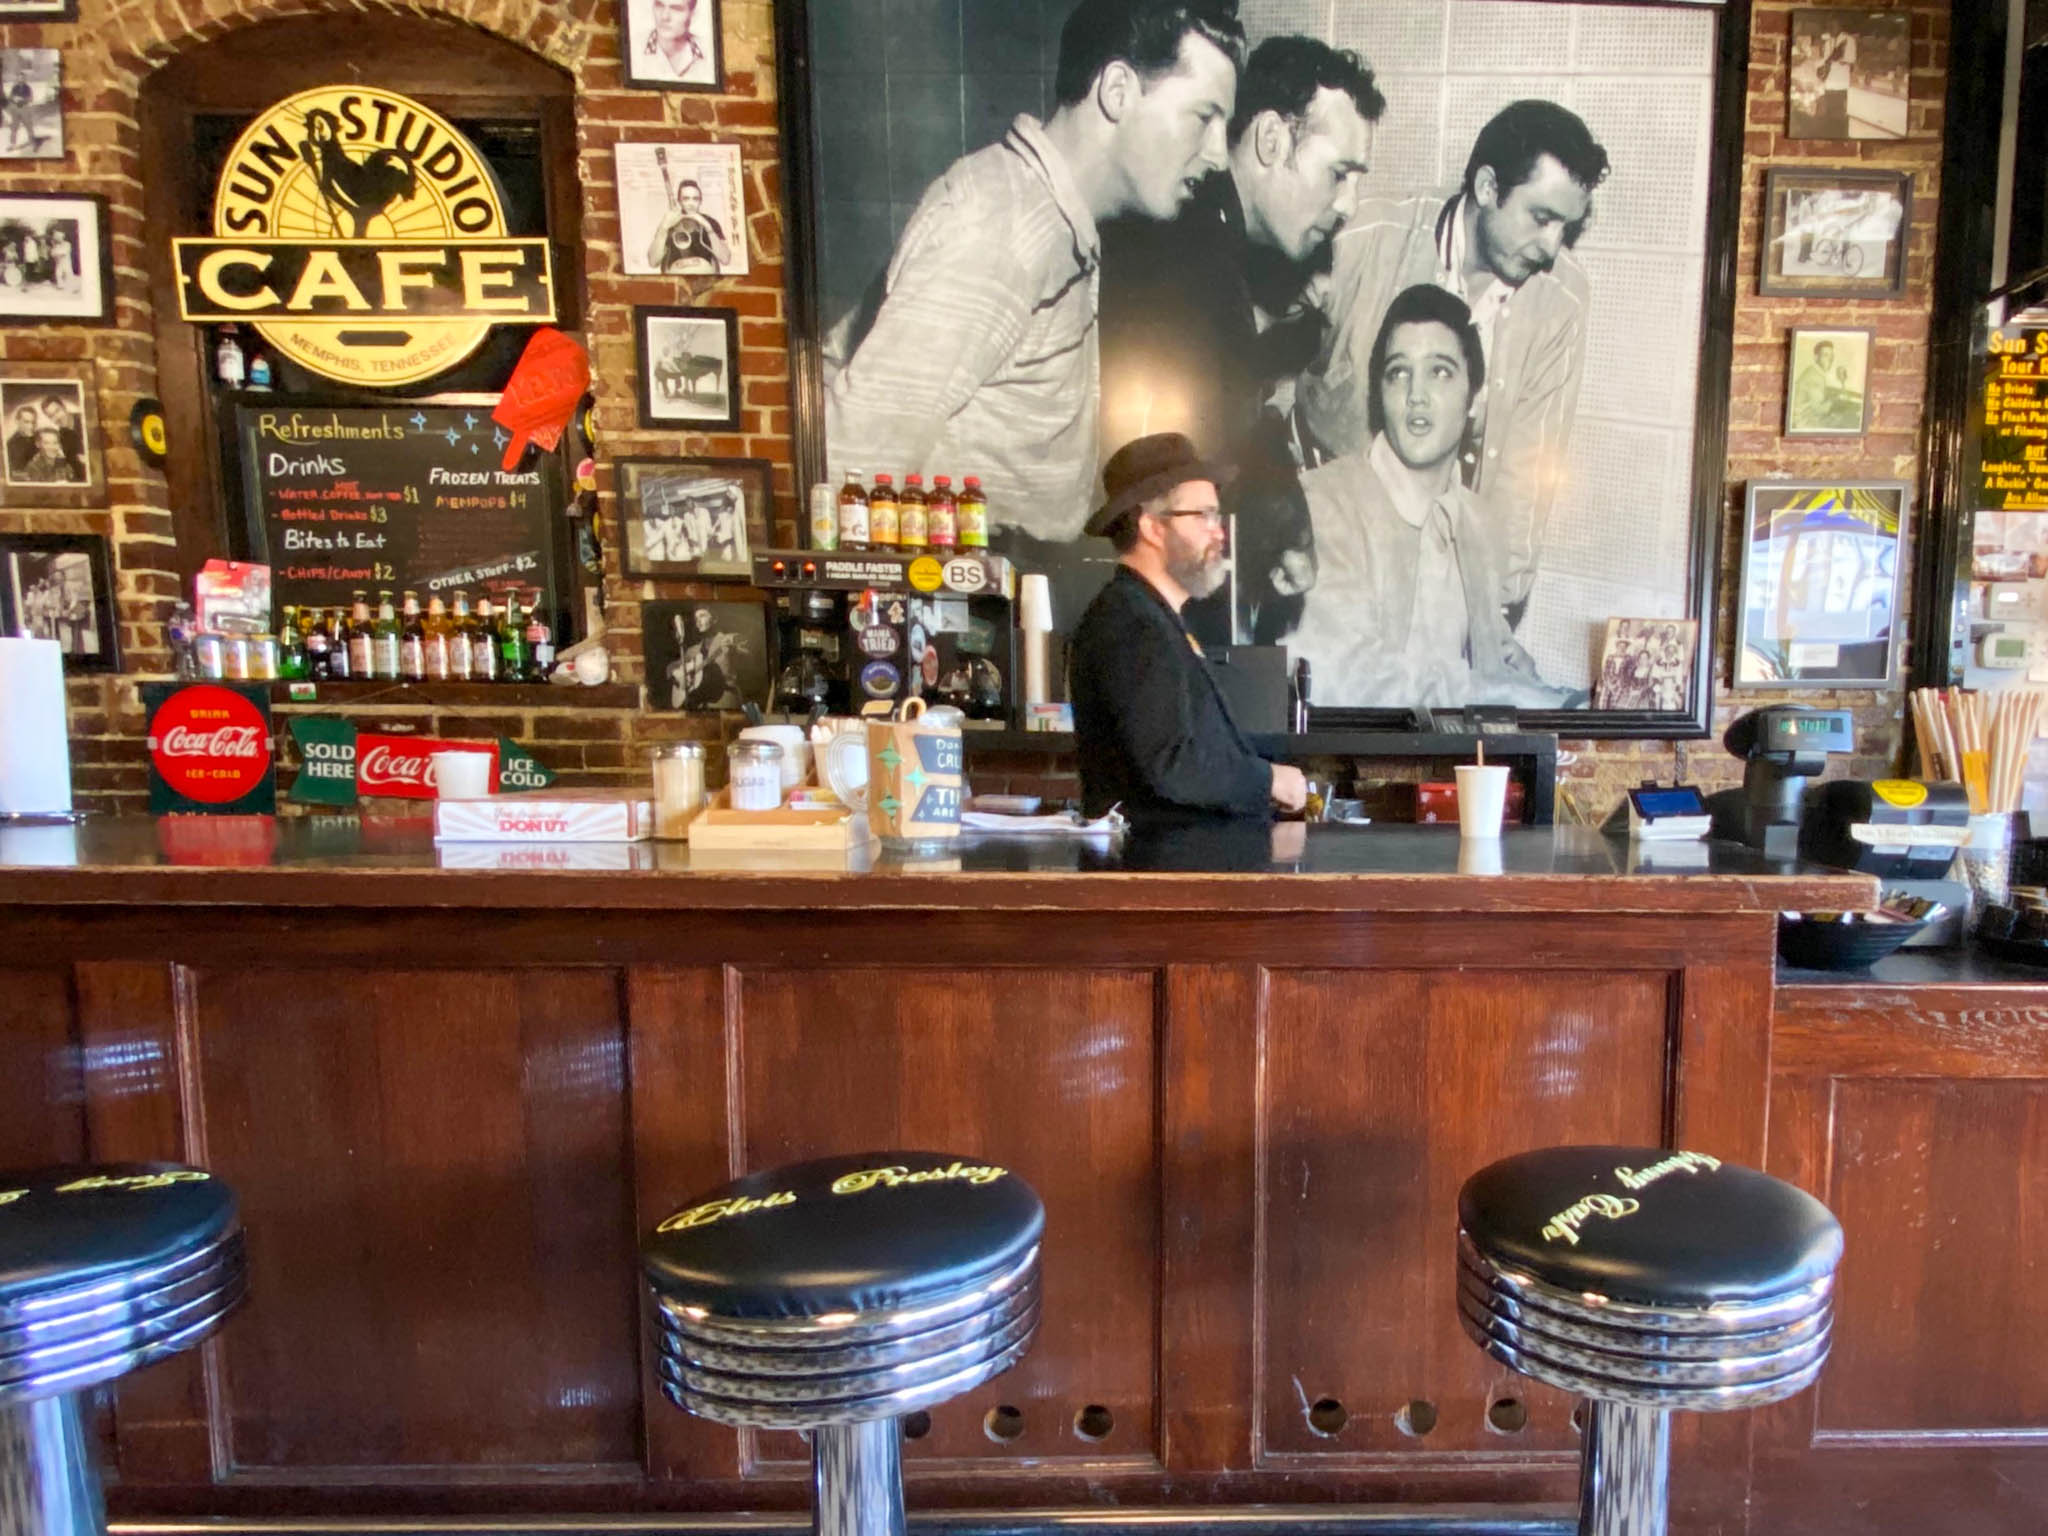 De bar van Sun Studio